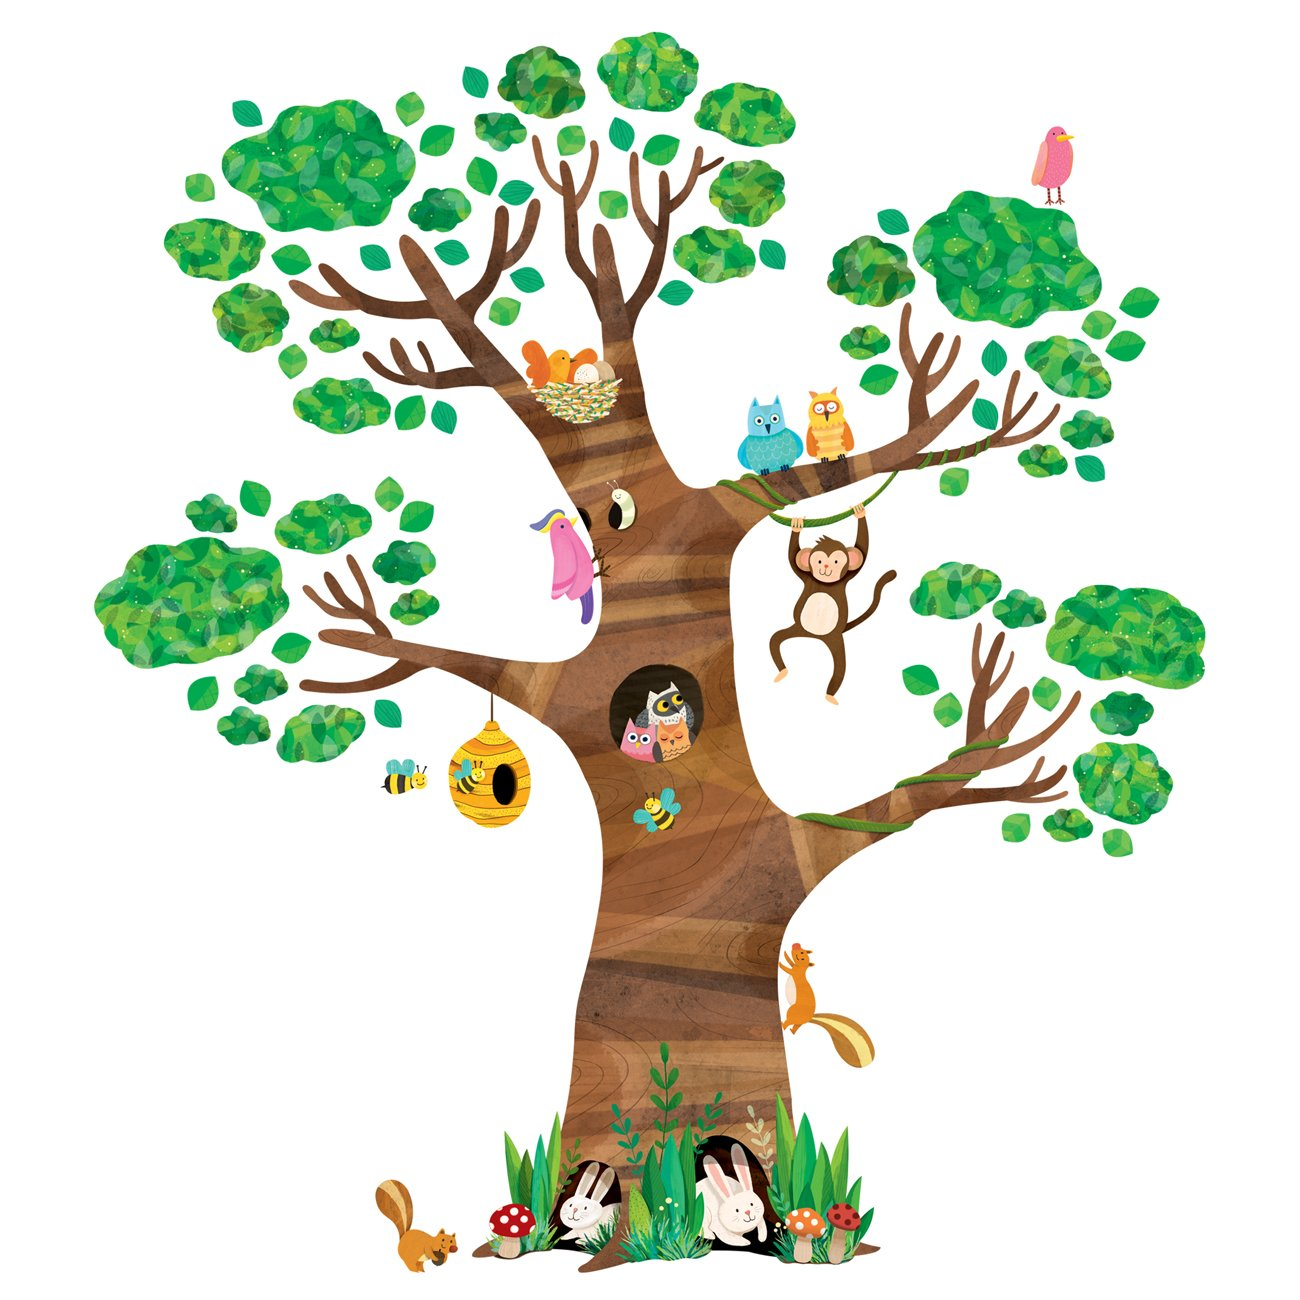 Decowall DL-1709 Giant Tree and Animals Kids Wall Decals Wall Stickers Peel and Stick Removable Wall Stickers for Kids Nursery Bedroom Living Room by Decowall